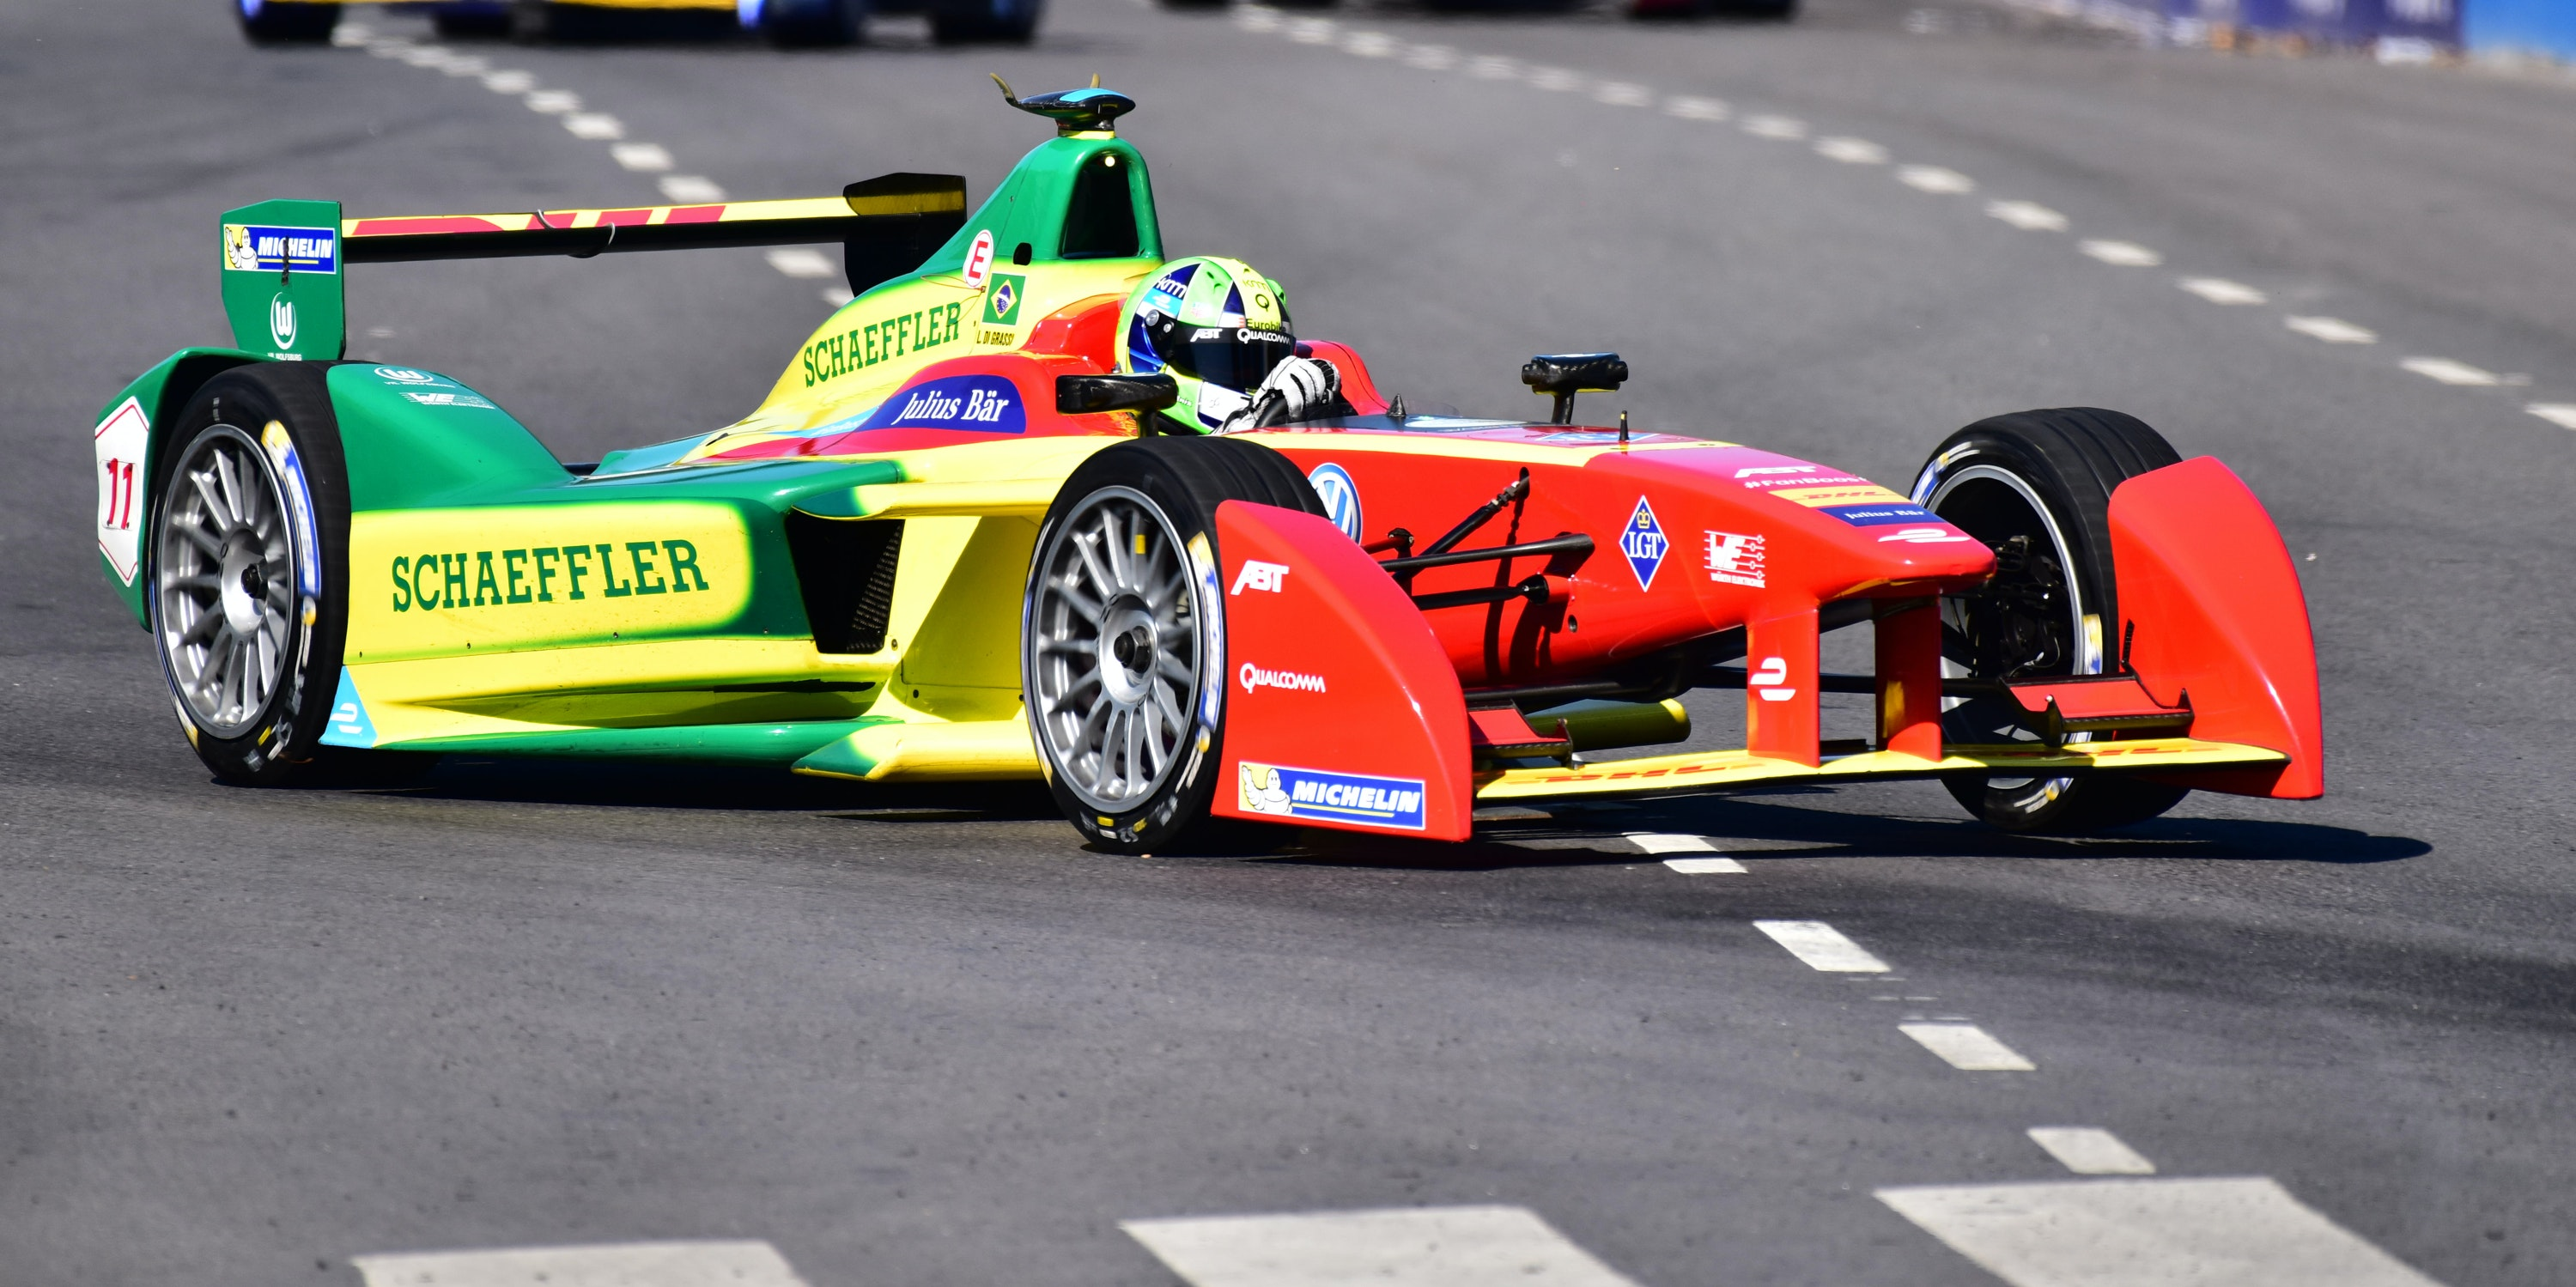 Lucas di Grassi of ABT Schaeffler Audi Sport during the Buenos Aires ePrix as part of 2015-2016 FIA Formula E Championship at Puerto Madero Street Race Track on February 06, 2016 in Buenos Aires, Argentina.